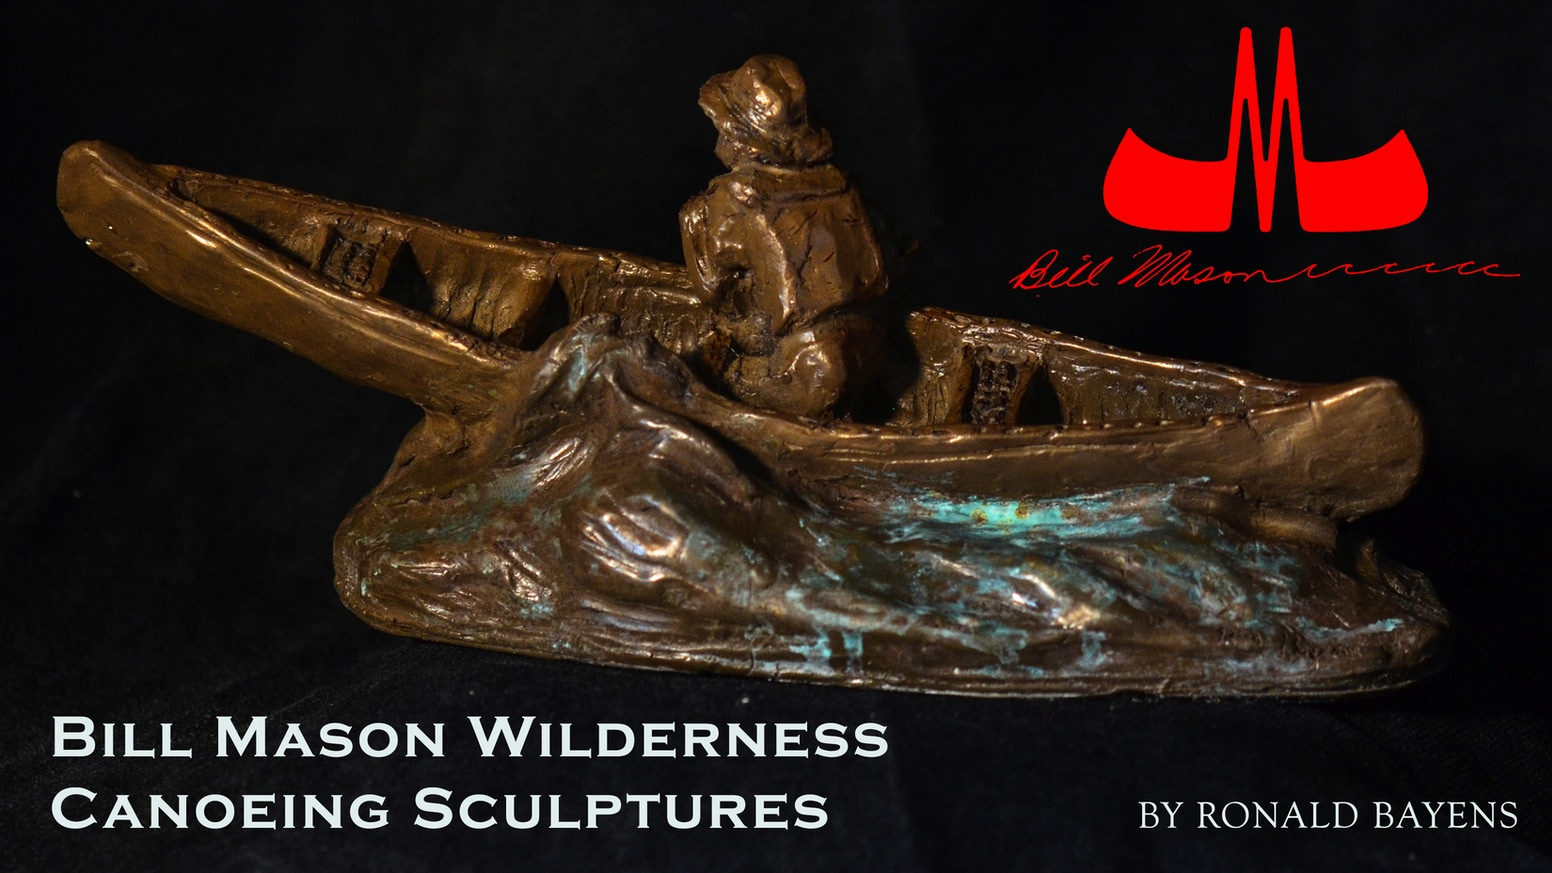 Limited edition, handcrafted bronze sculptures of wilderness canoeing icon, Oscar-nominated filmmaker and author, Bill Mason.